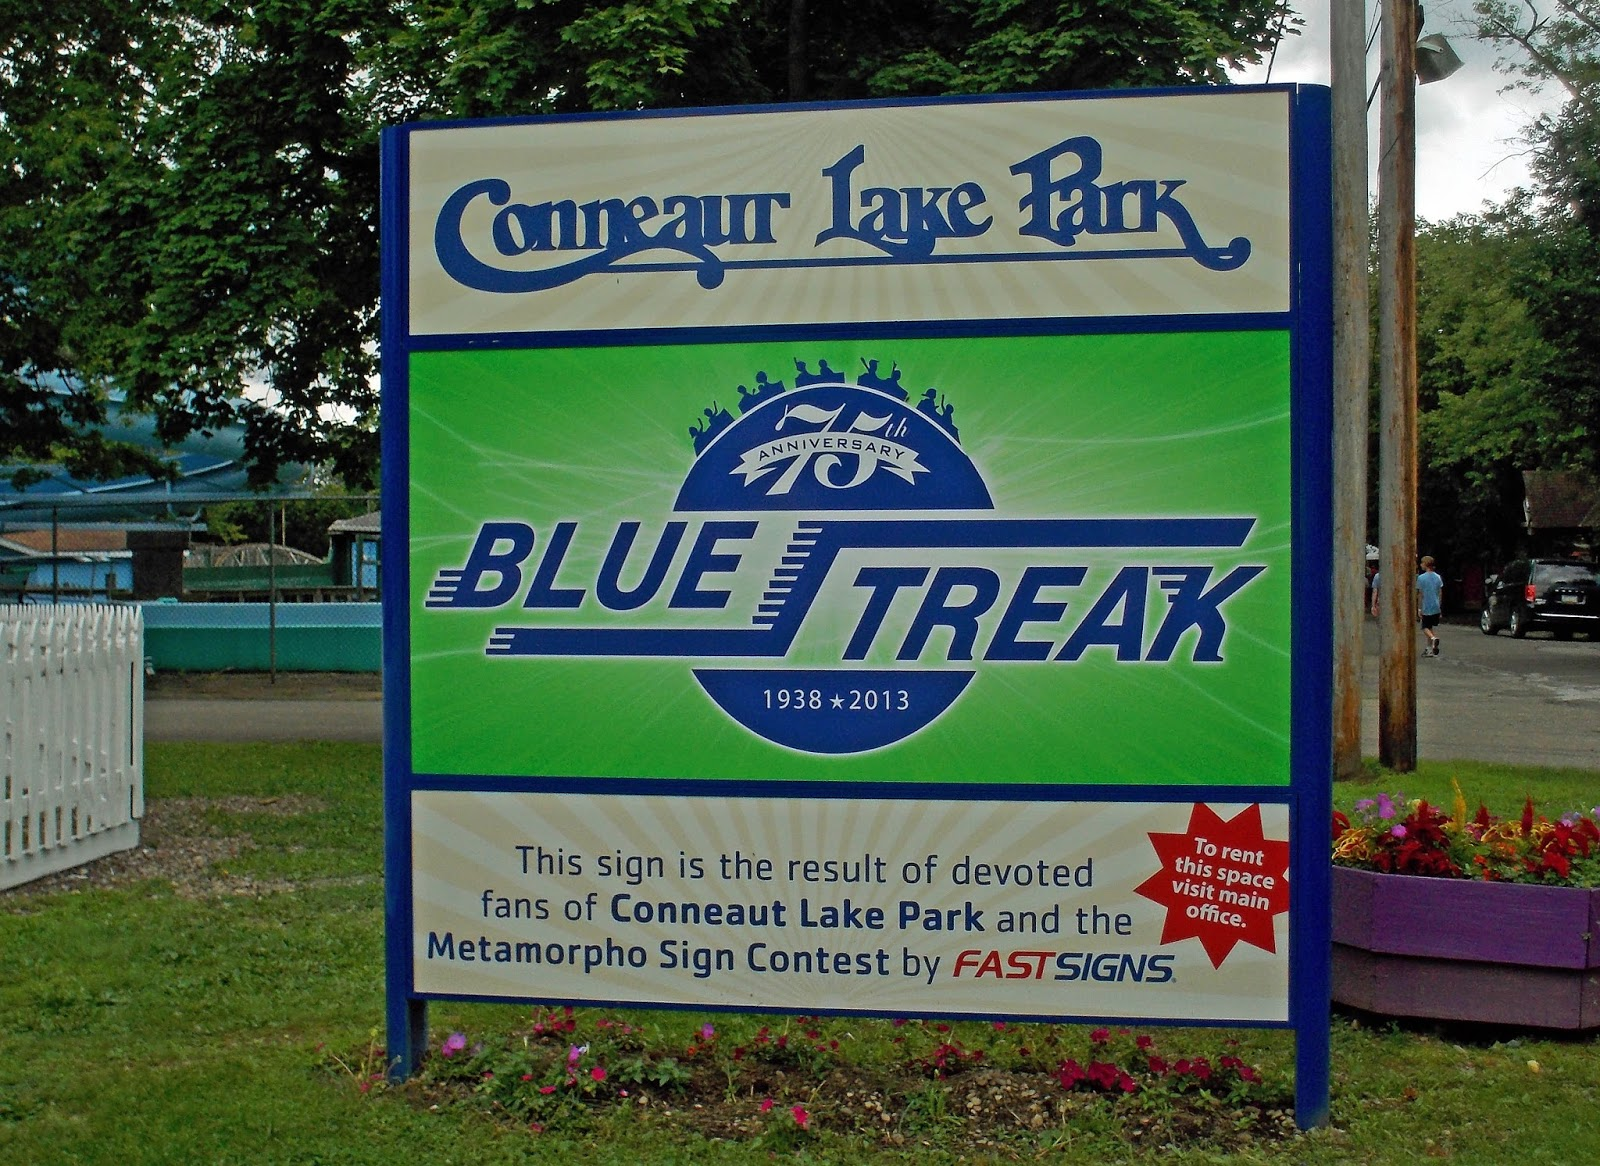 conneaut lake online dating Chalets by the lake are charming little abodes slightly tucked away in the forest near the beautiful conneaut lake come enjoy all the lake has to offer boating, fishing, swimming, and conneaut lake amusement park.